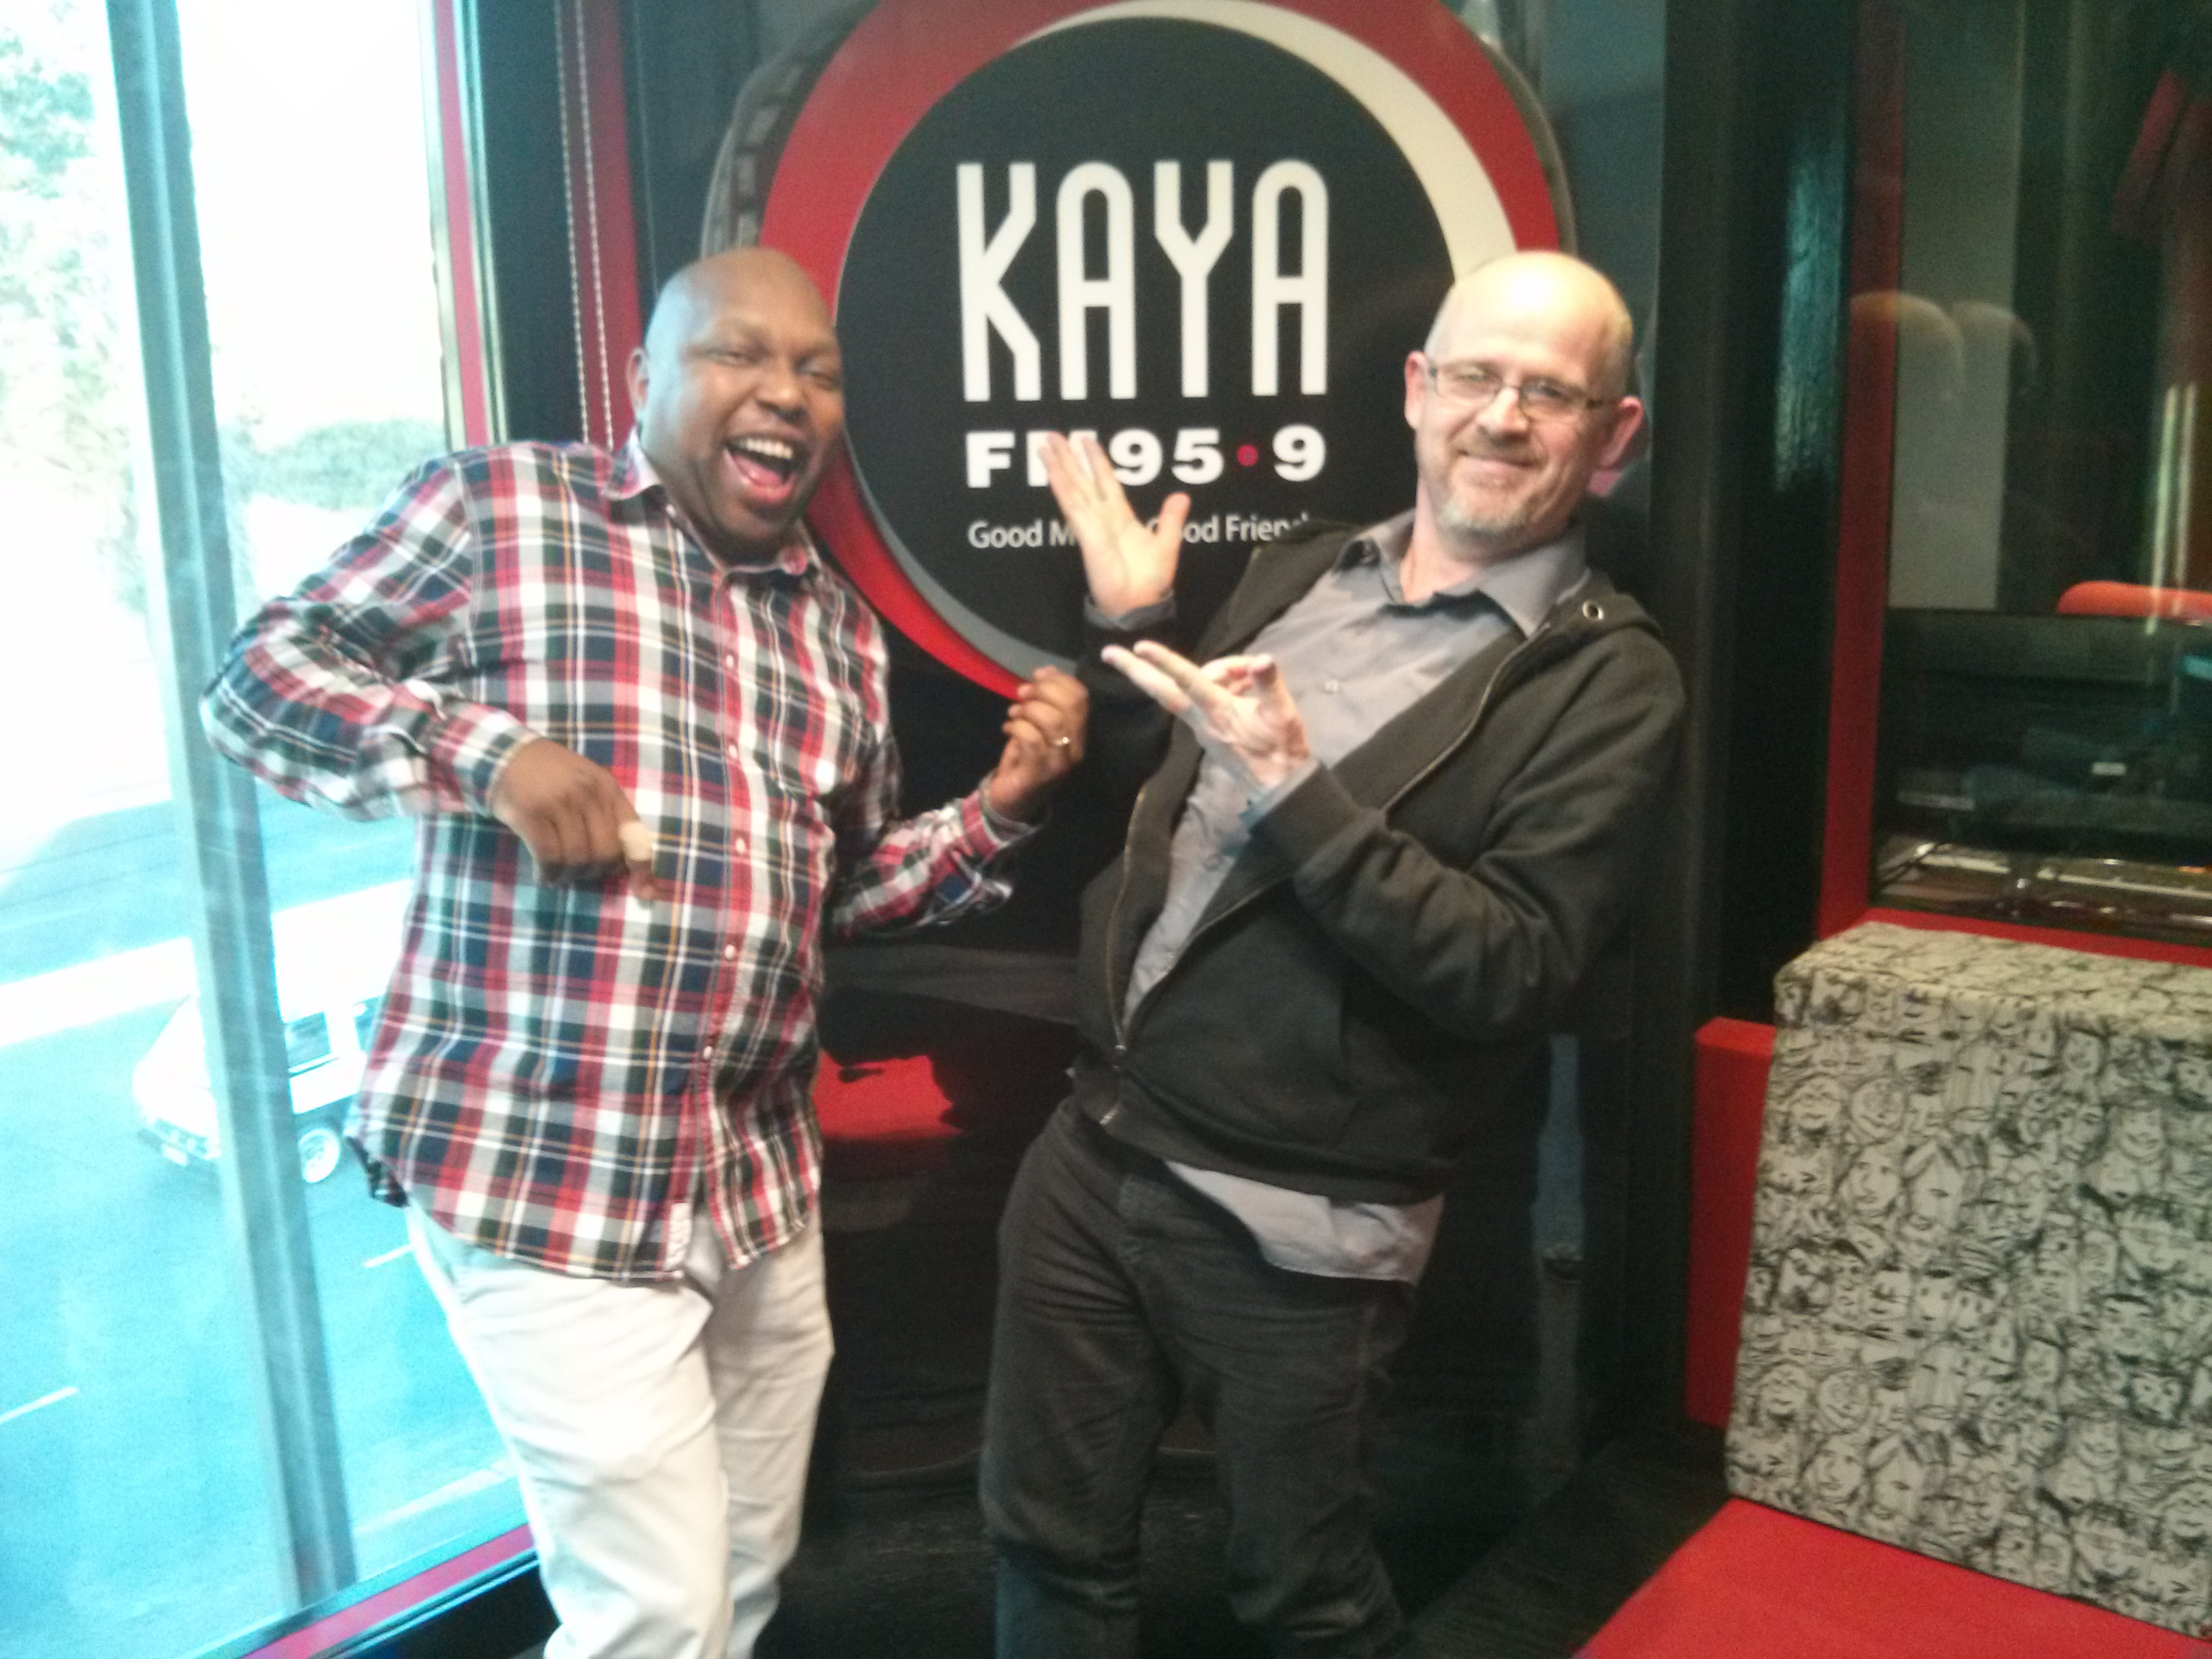 Interview with Mo-G at Kaya FM in Johannesburg